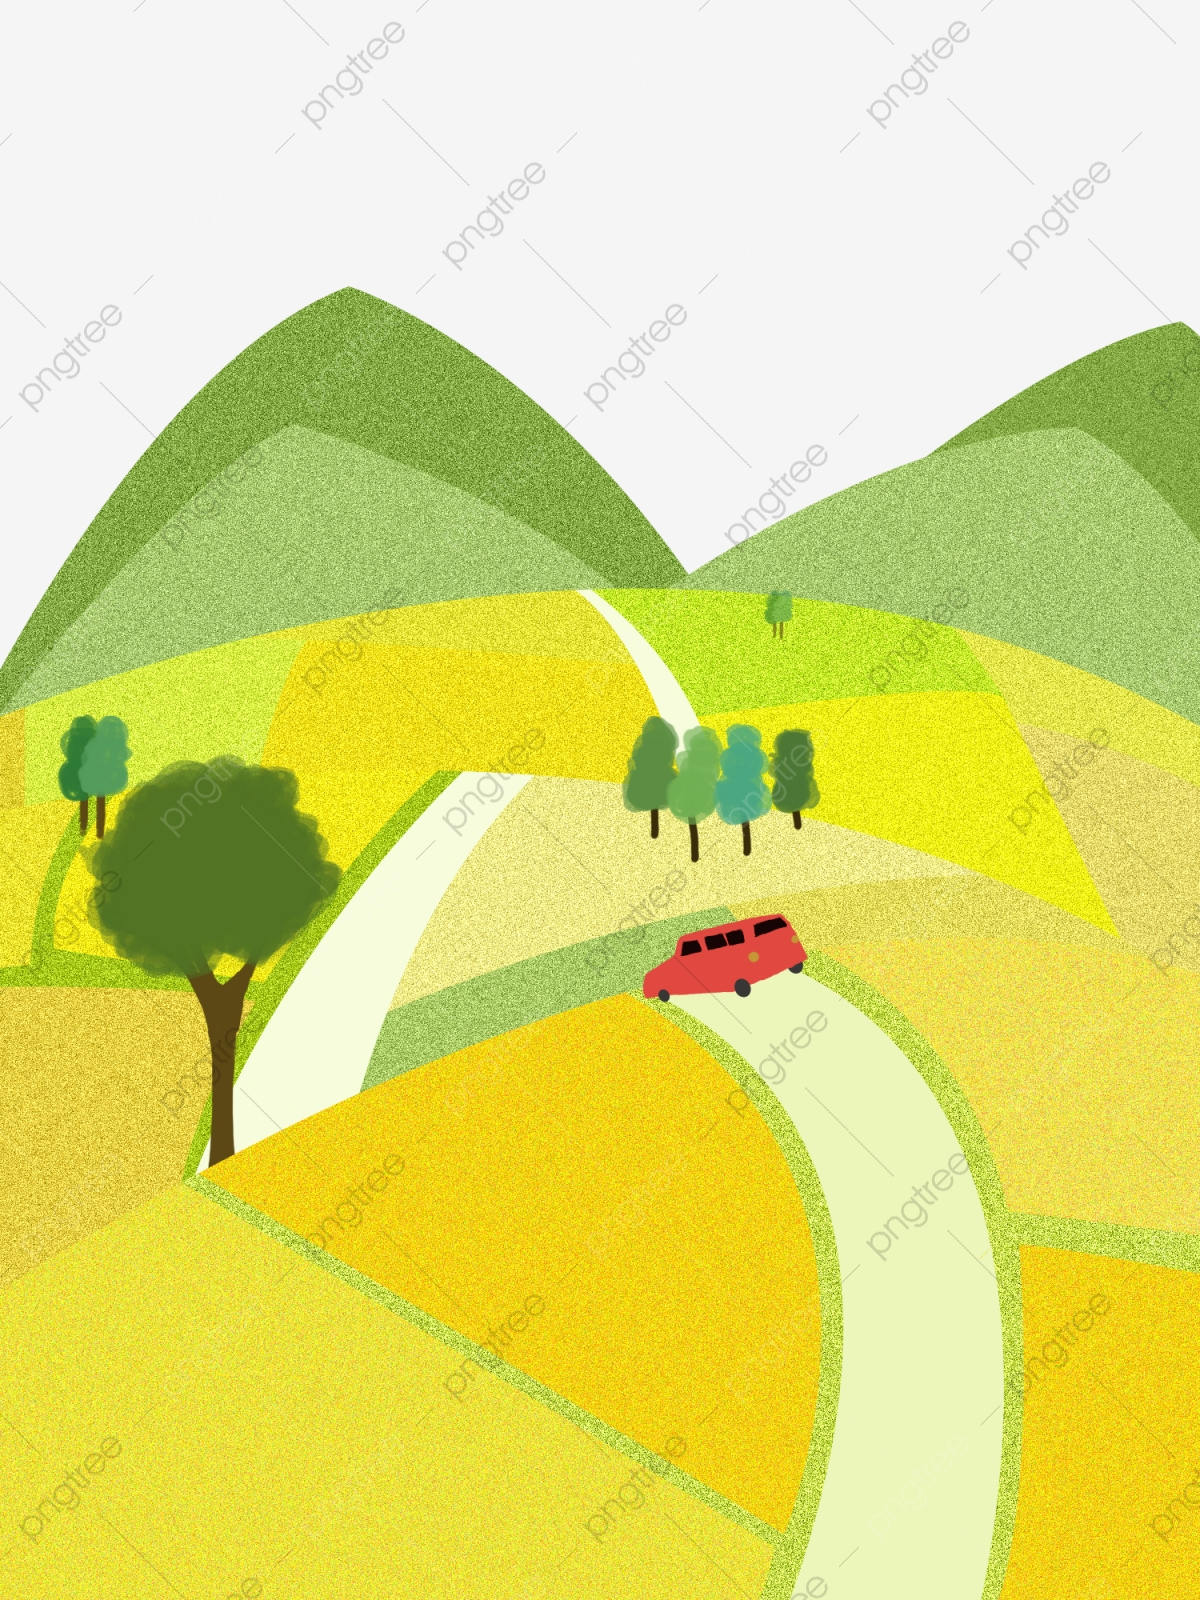 Small Fresh Wind Rape Flower Field Country Road Hand Painted Illustration Free  Download, Small Fresh, Rapeseed, Rapeseed Field Decoration Illustration PNG  Transparent Clipart Image and PSD File for Free Download